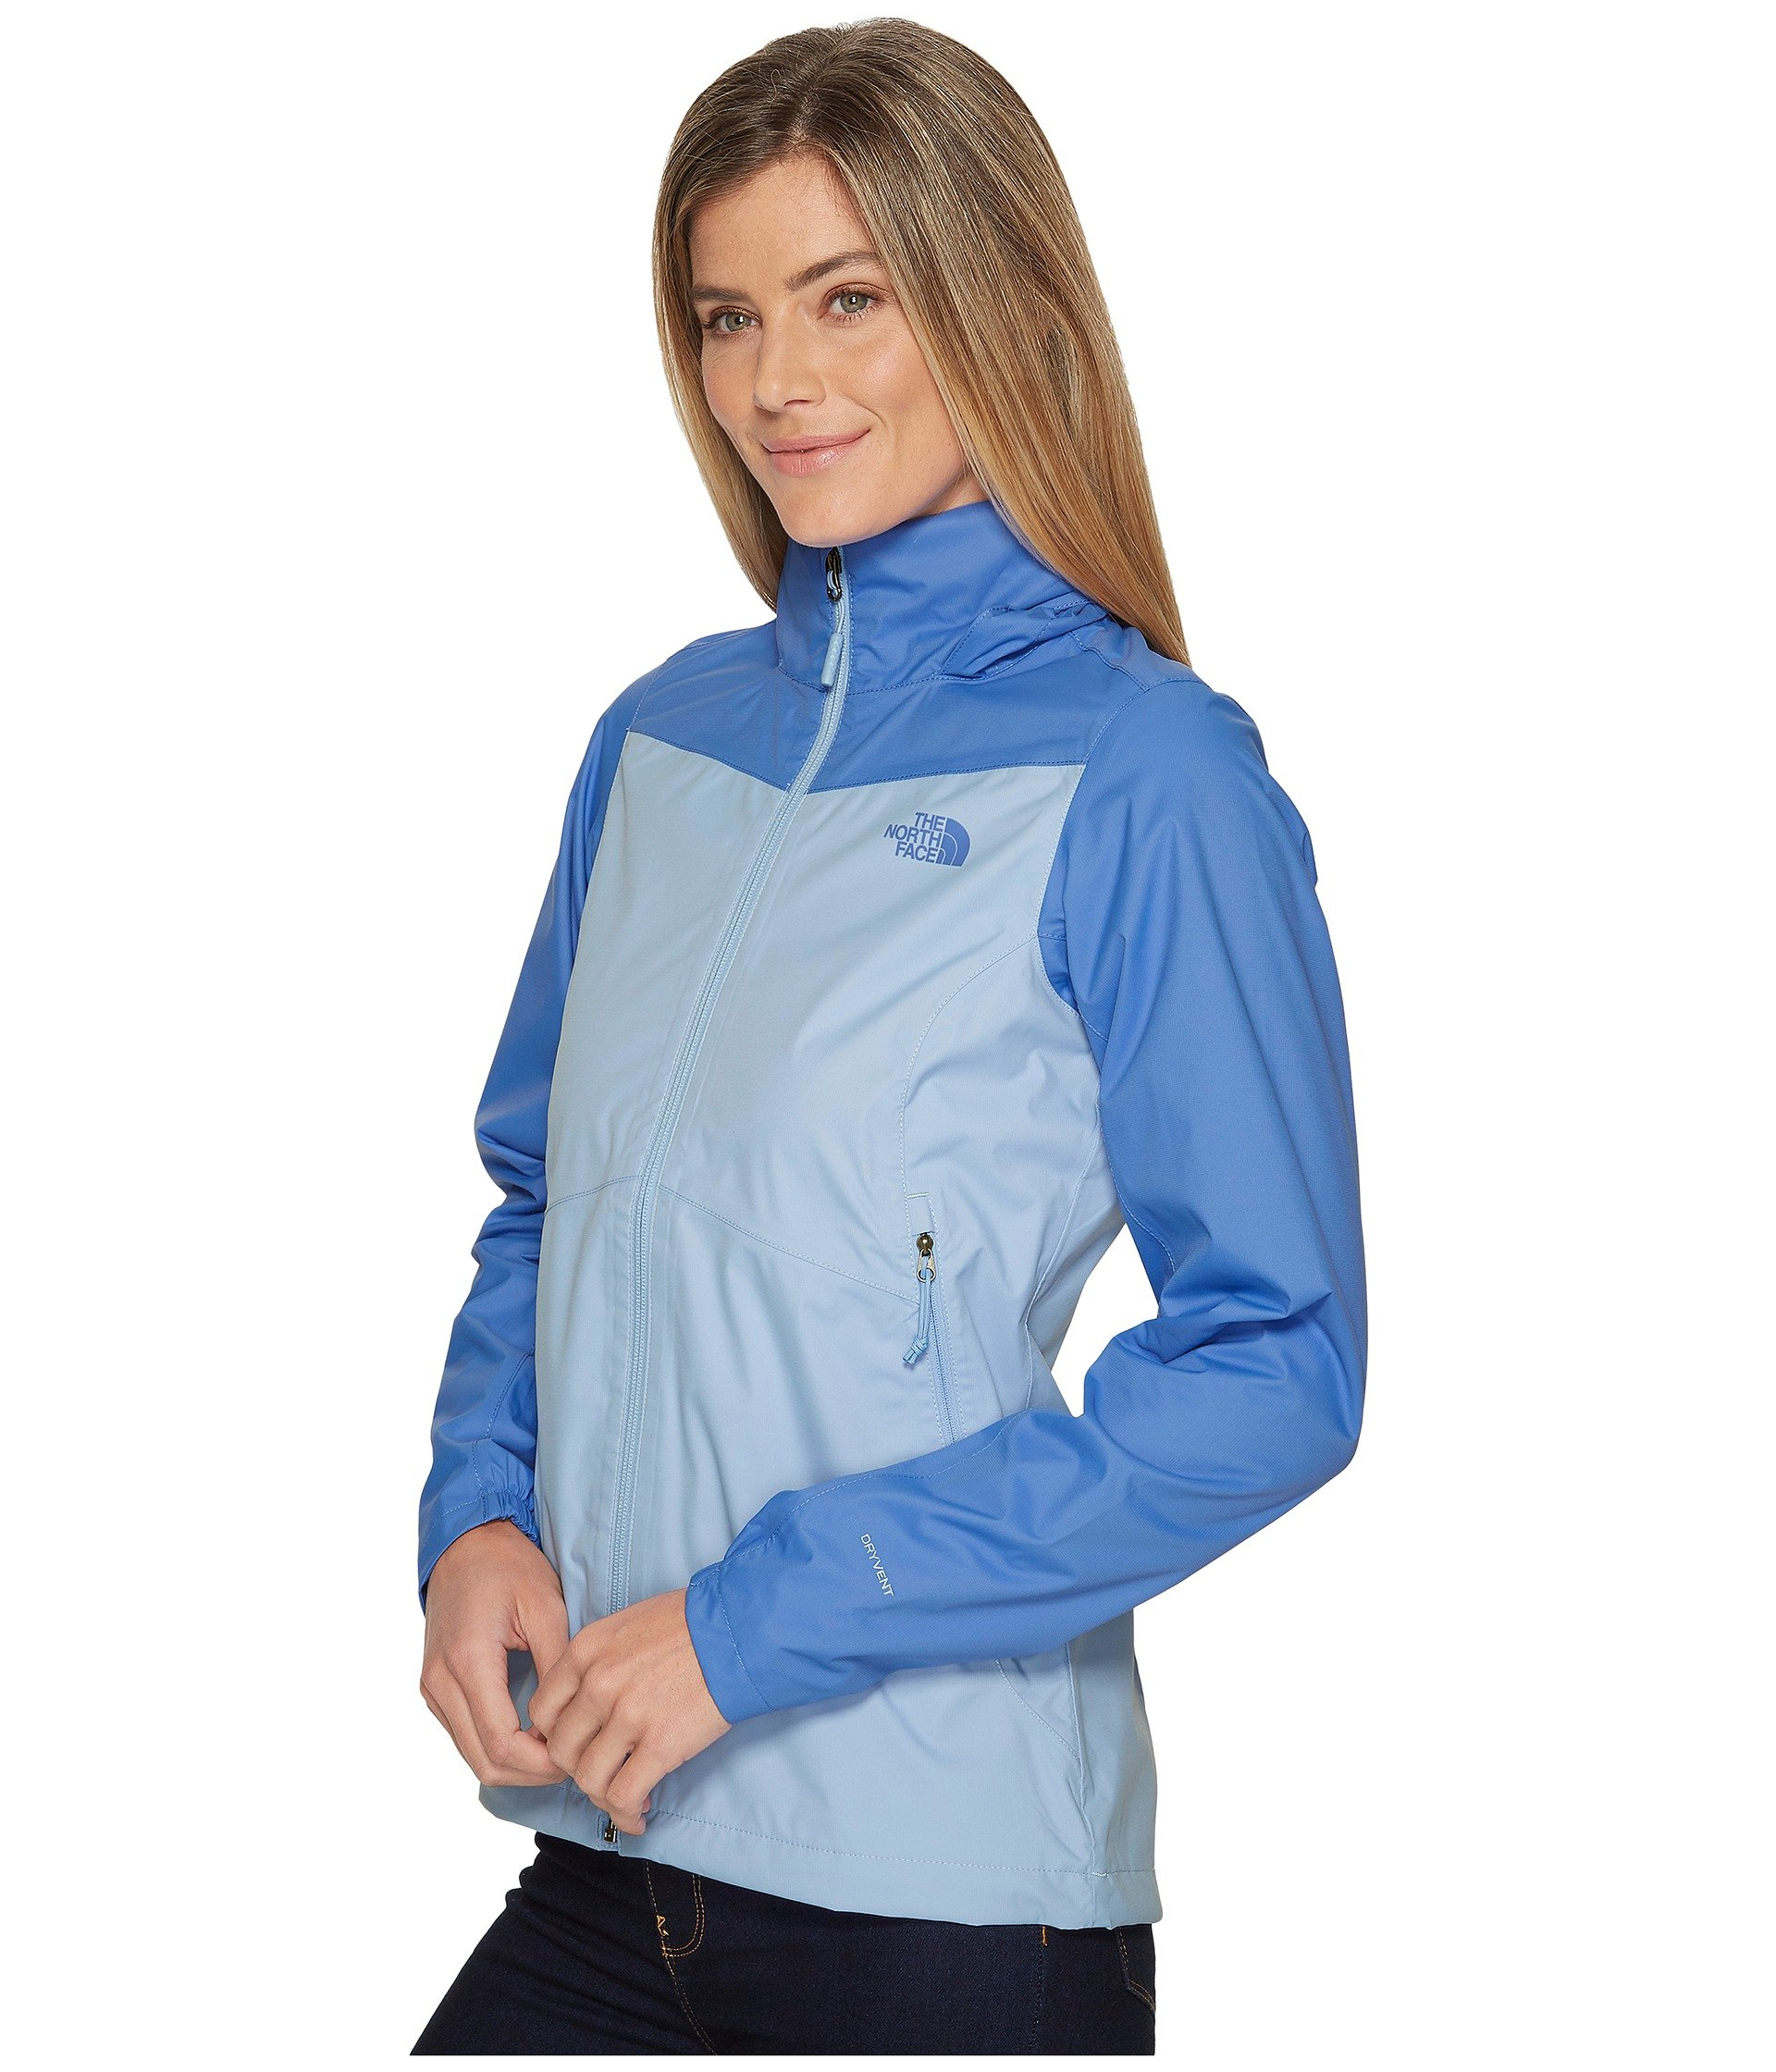 Plus Resolve stellar Blue North The Blue Jacket Face Collar qH77At